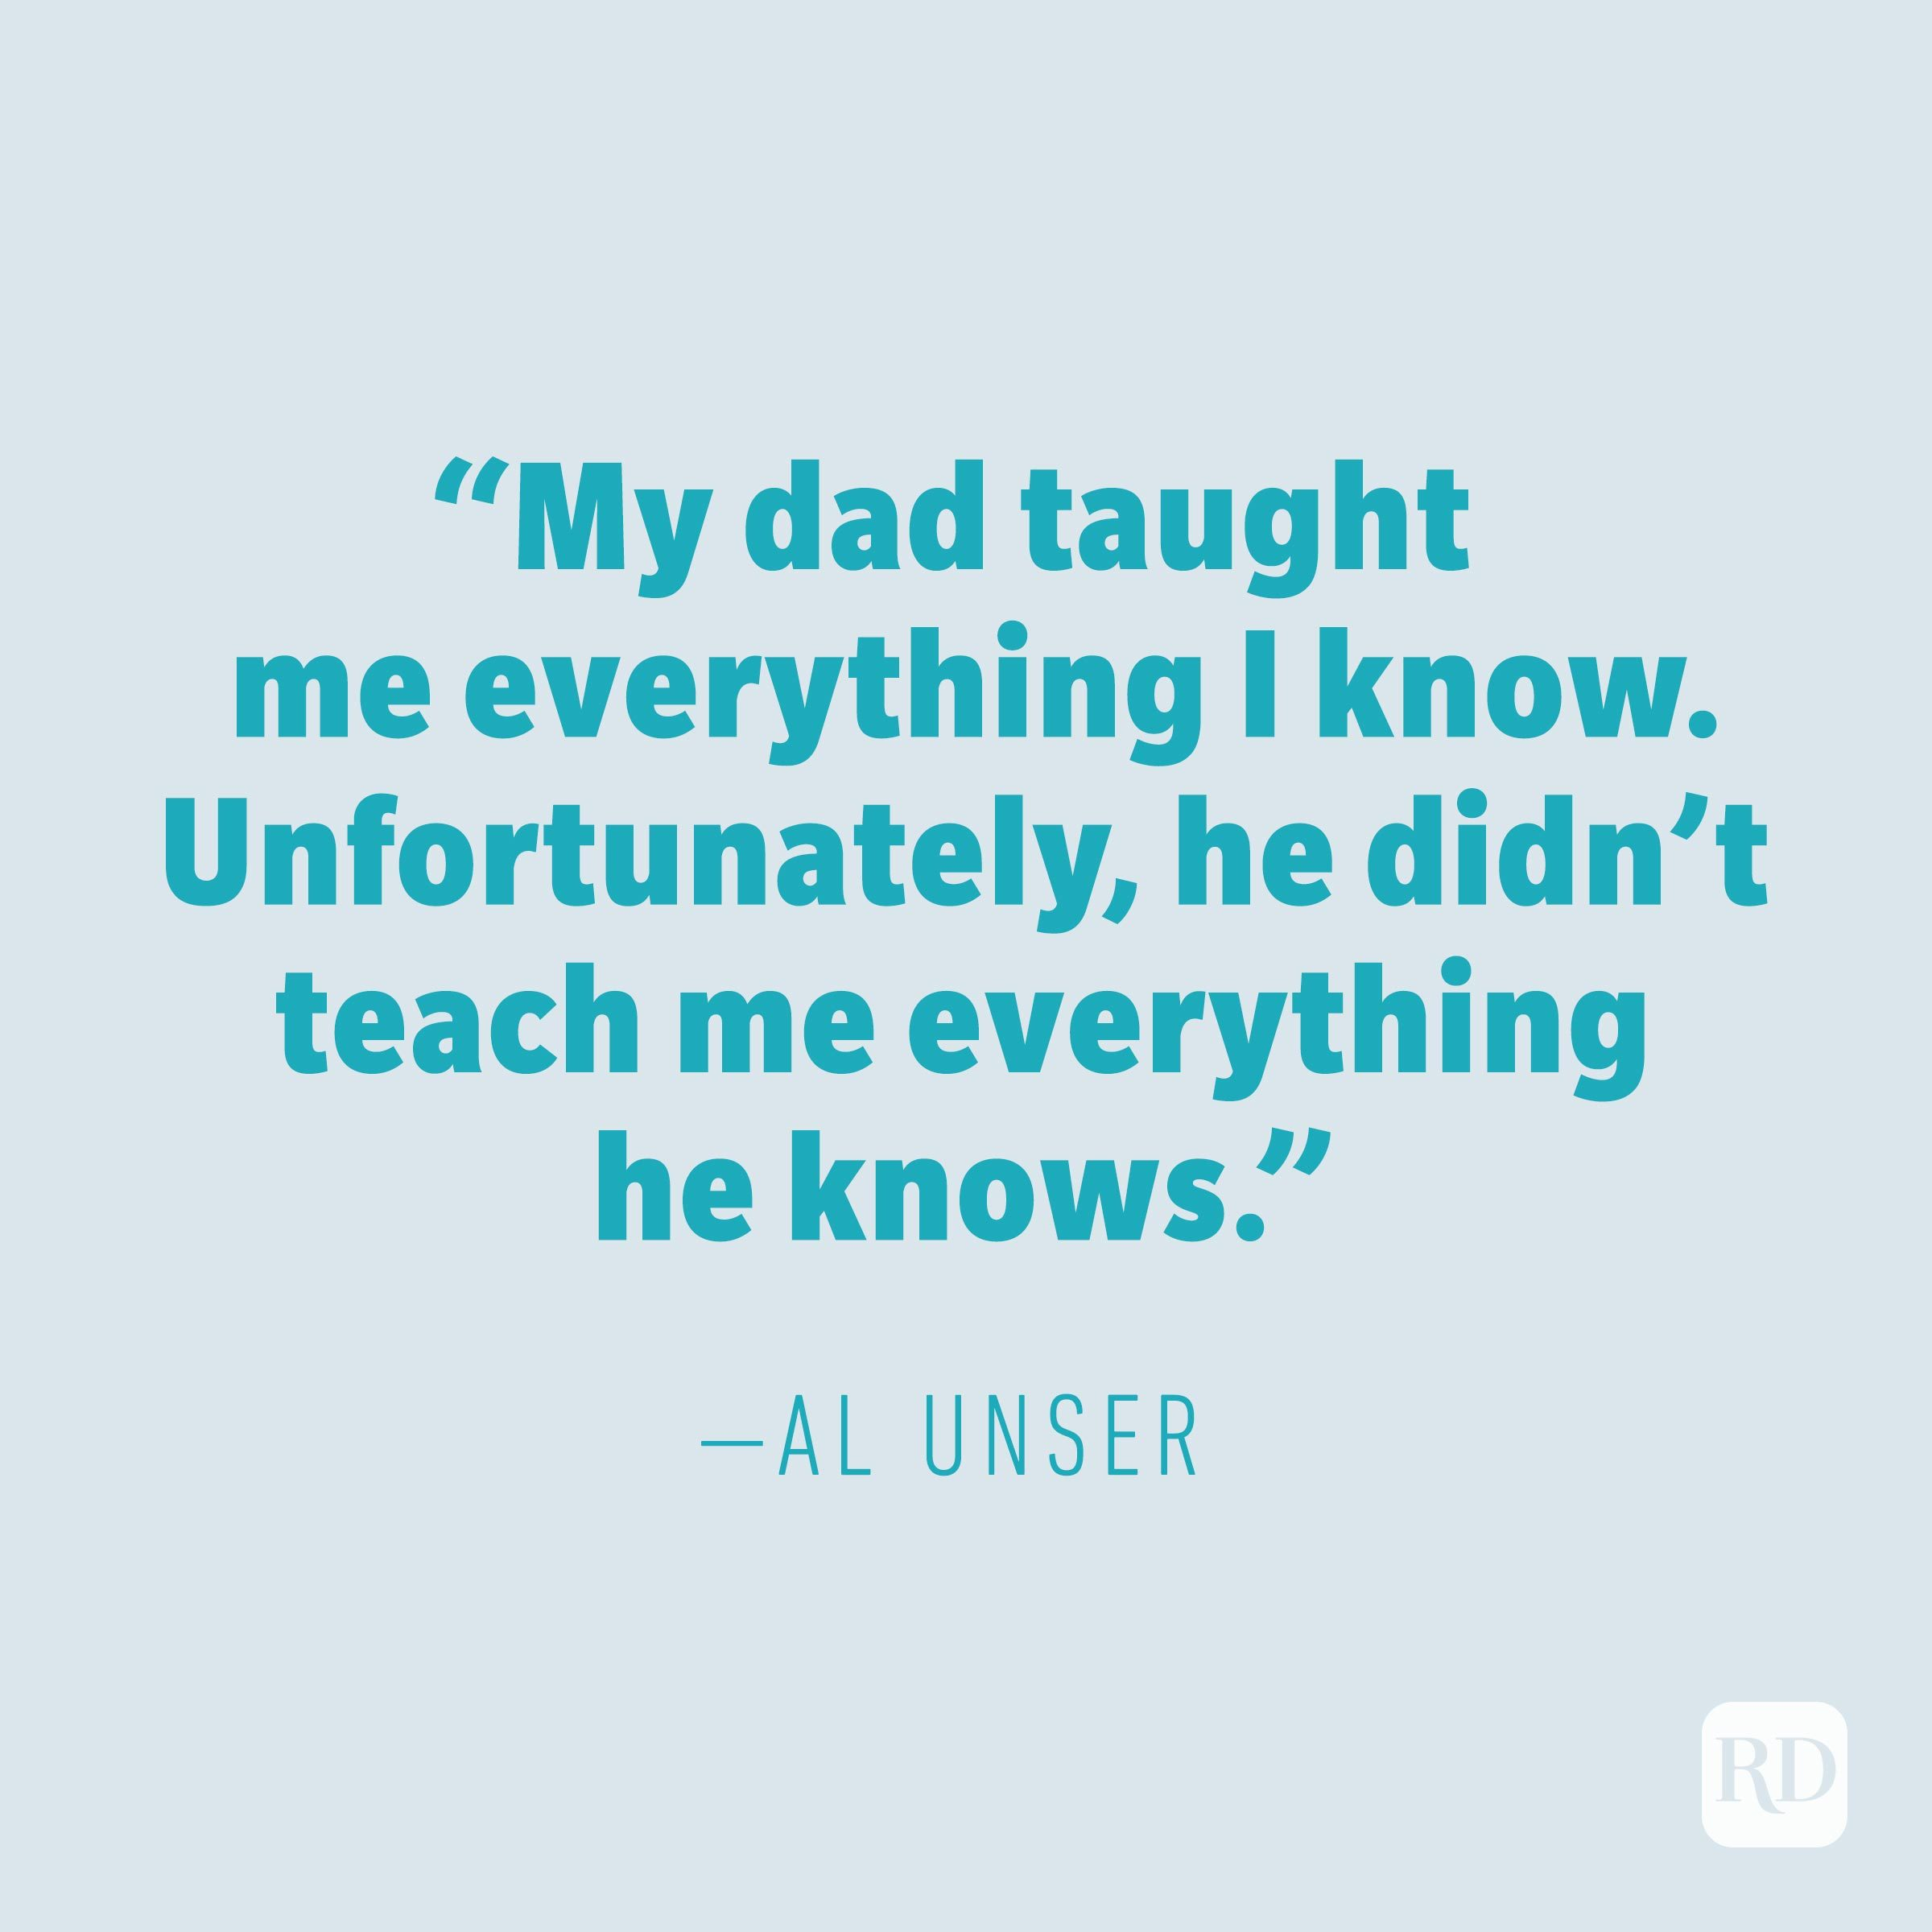 """My dad taught me everything I know. Unfortunately, he didn't teach me everything he knows."" —AL UNSER"